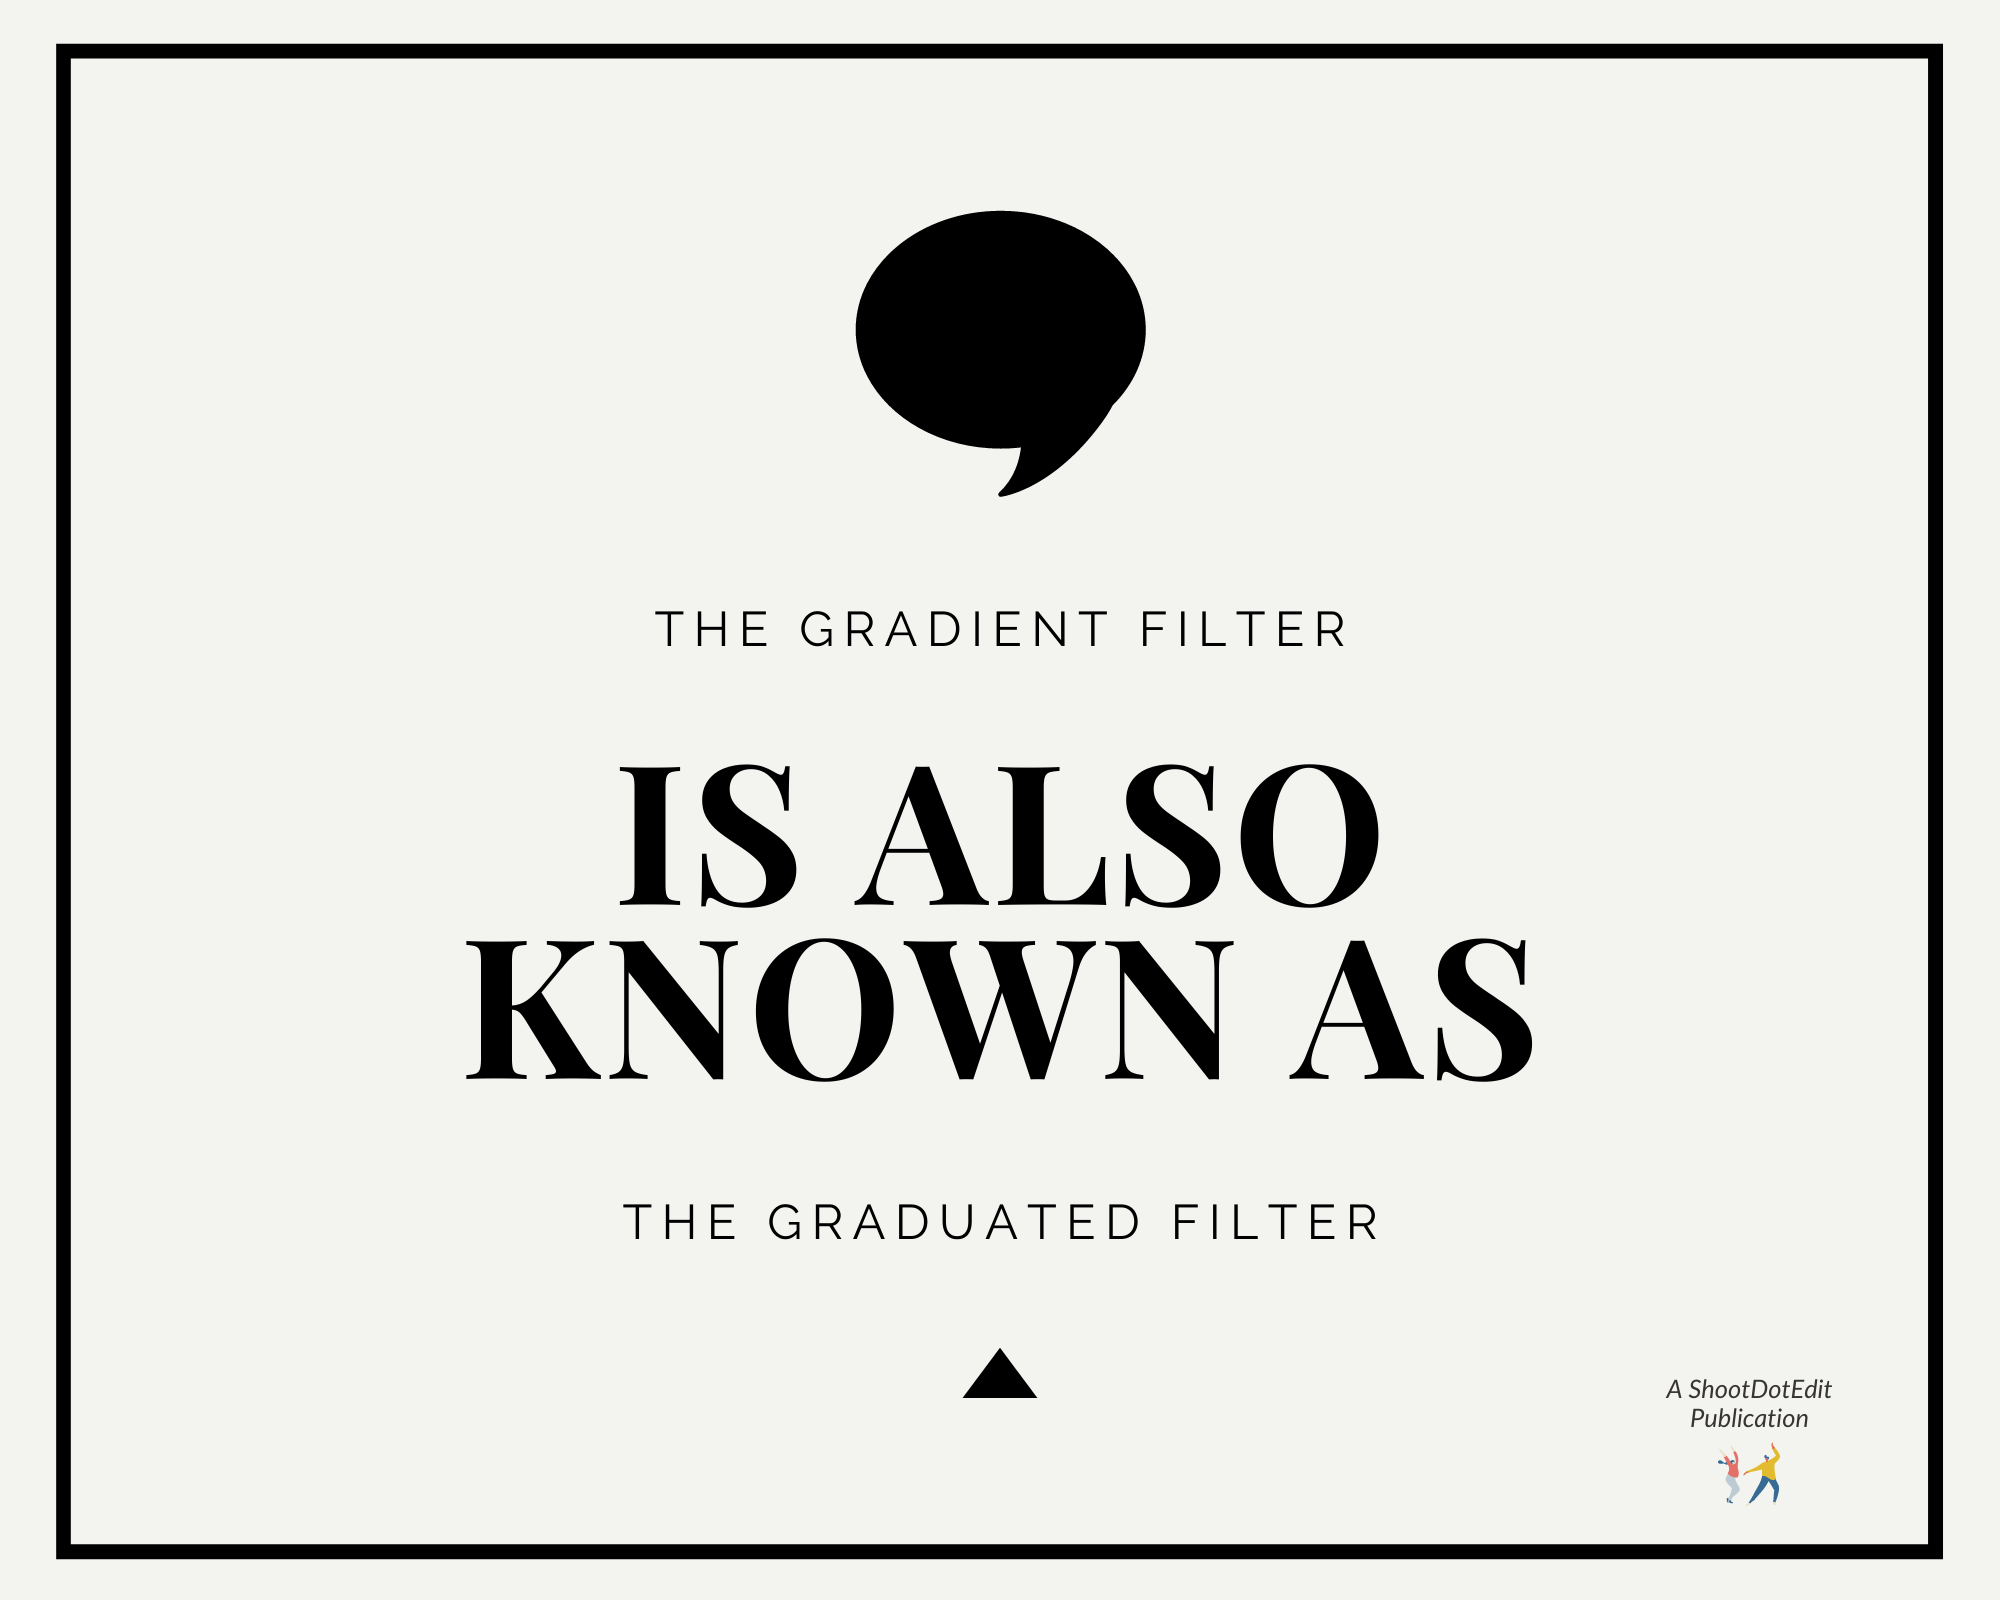 Infographic stating the gradient filter is also known as the graduated filter